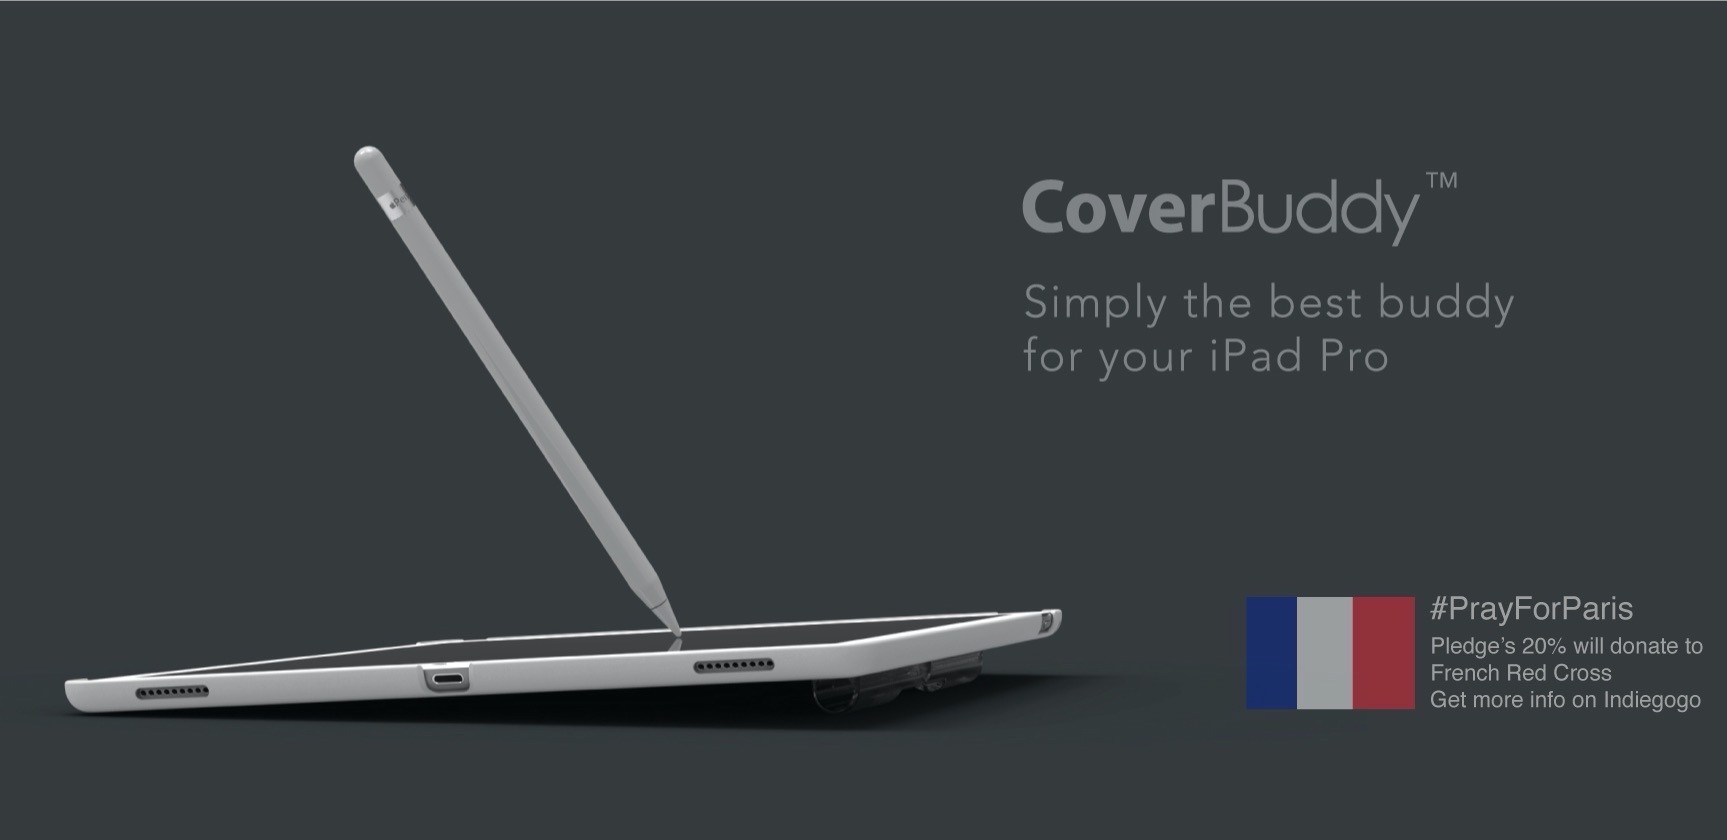 CoverBuddy